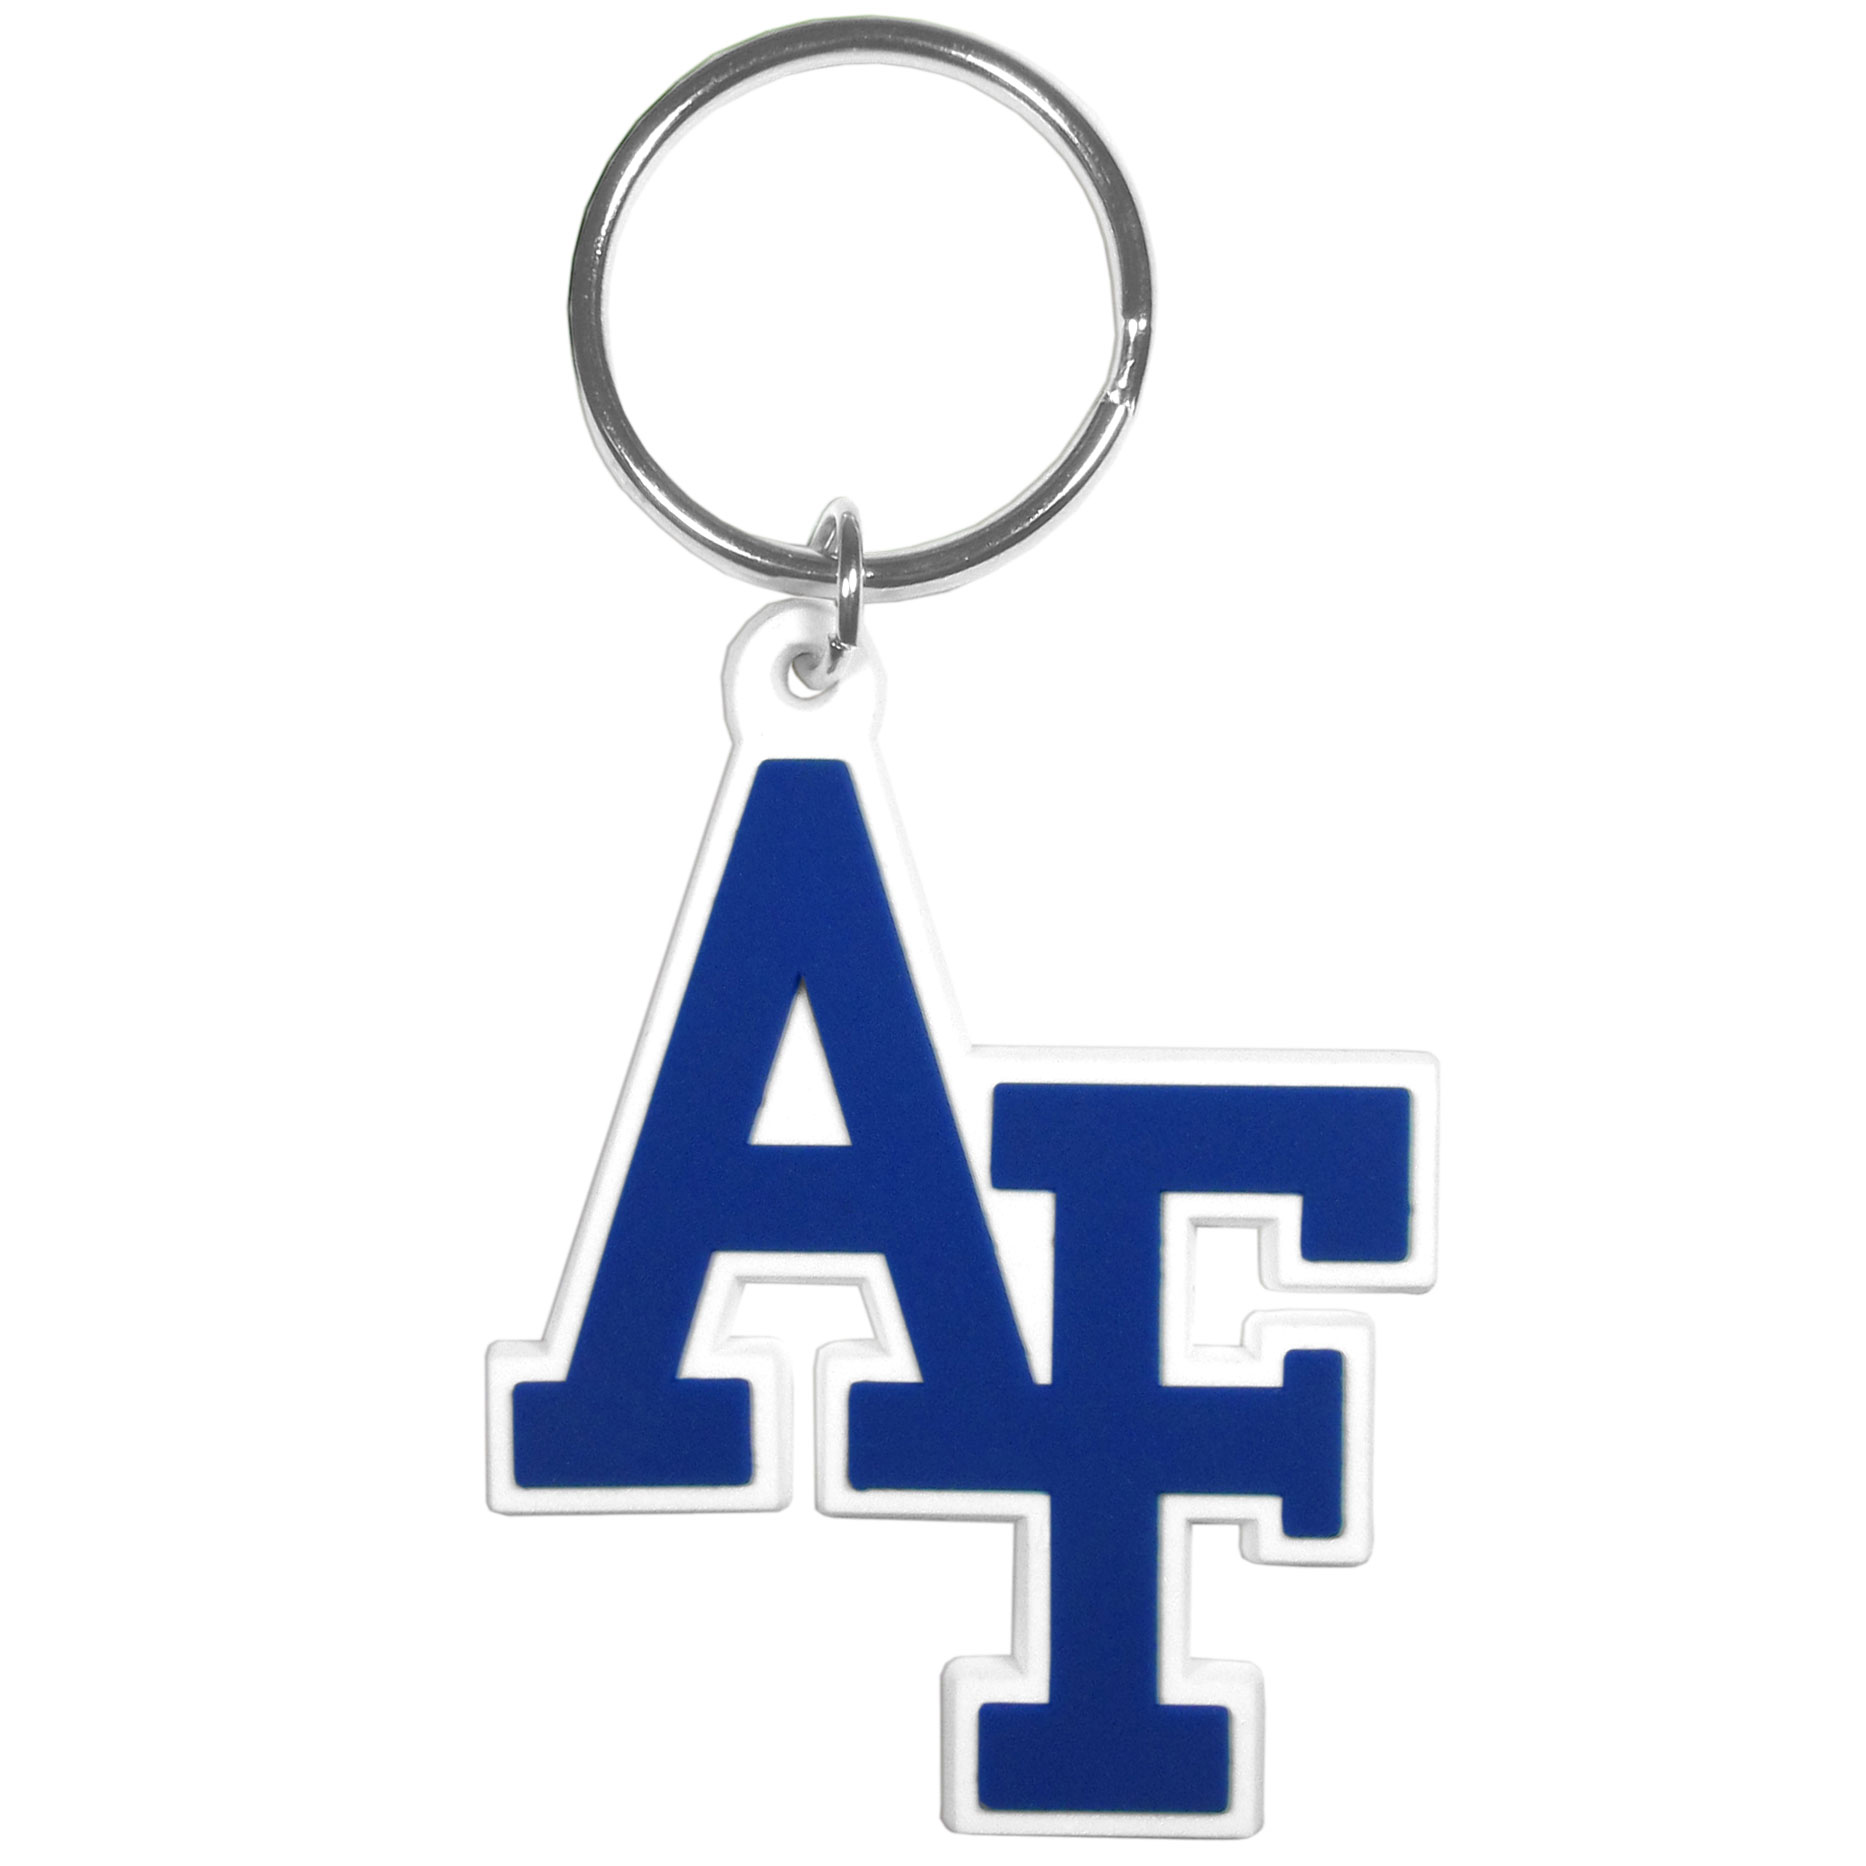 US Air Force Academy Flex Key Chain - Our fun, flexible US Air Force Academy key chains are made of a rubbery material that is layered to create a bright, textured logo.